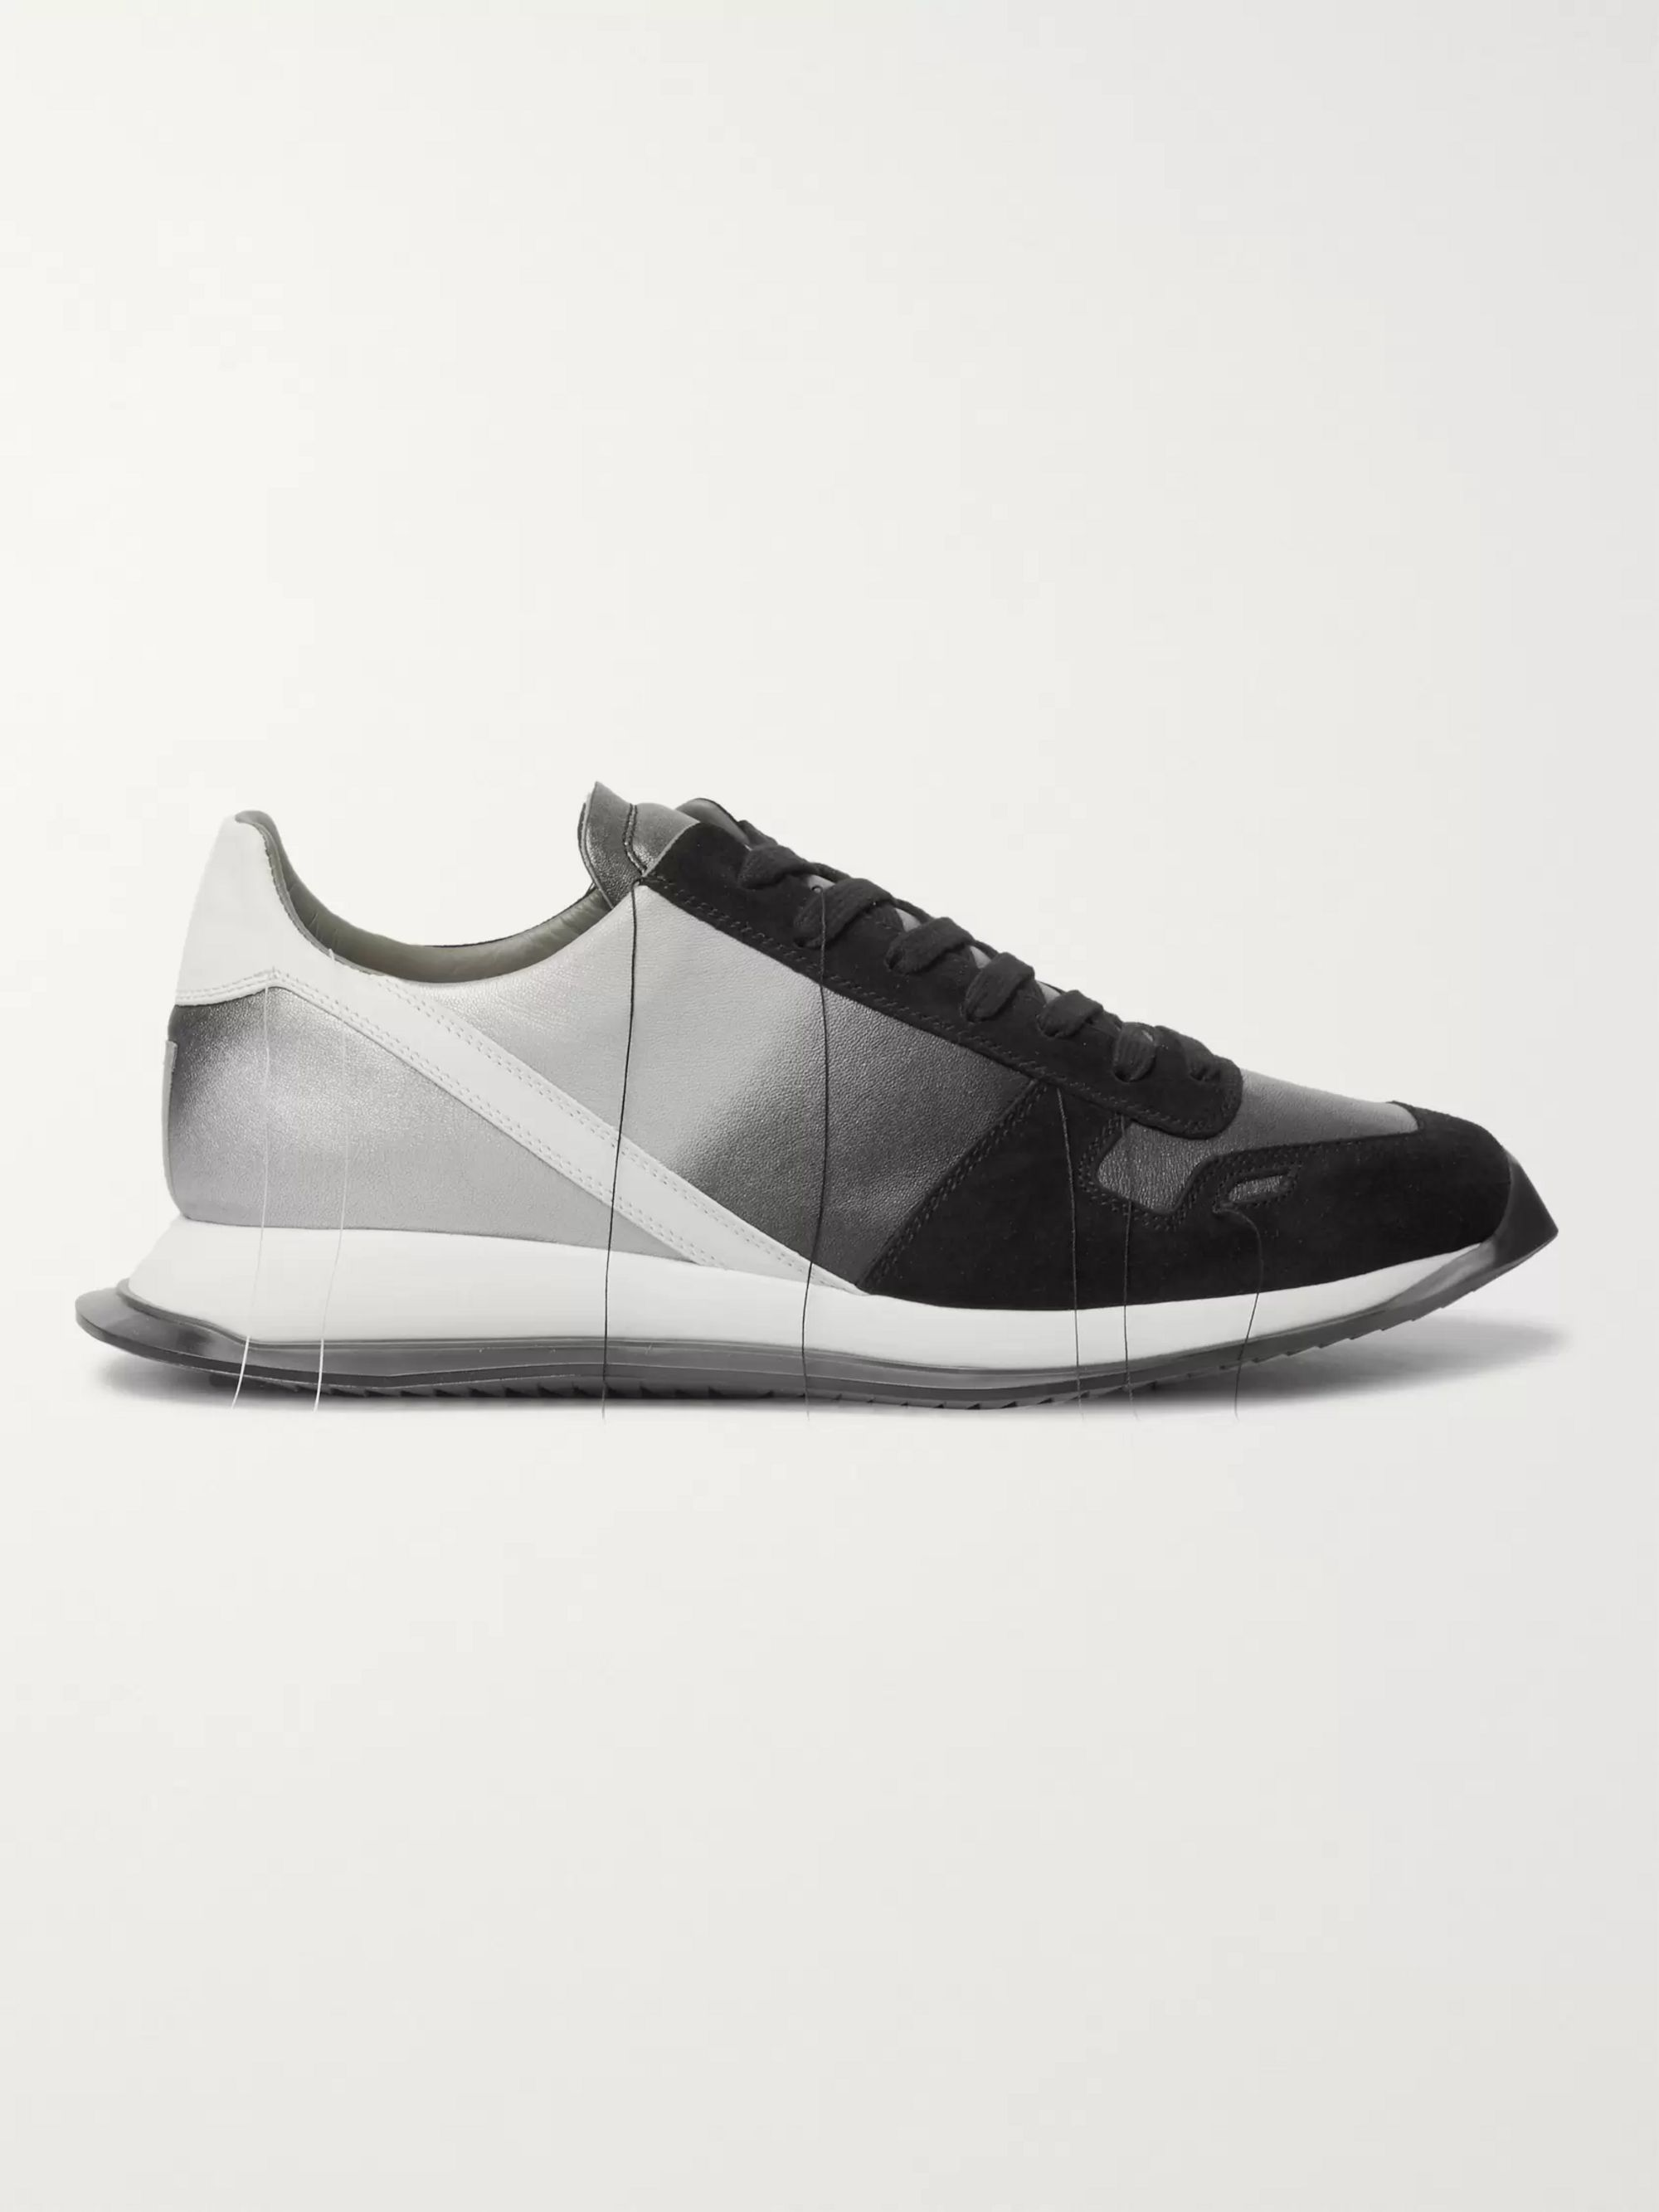 Rick Owens New Vintage Runner Dégradé Suede and Leather Sneakers